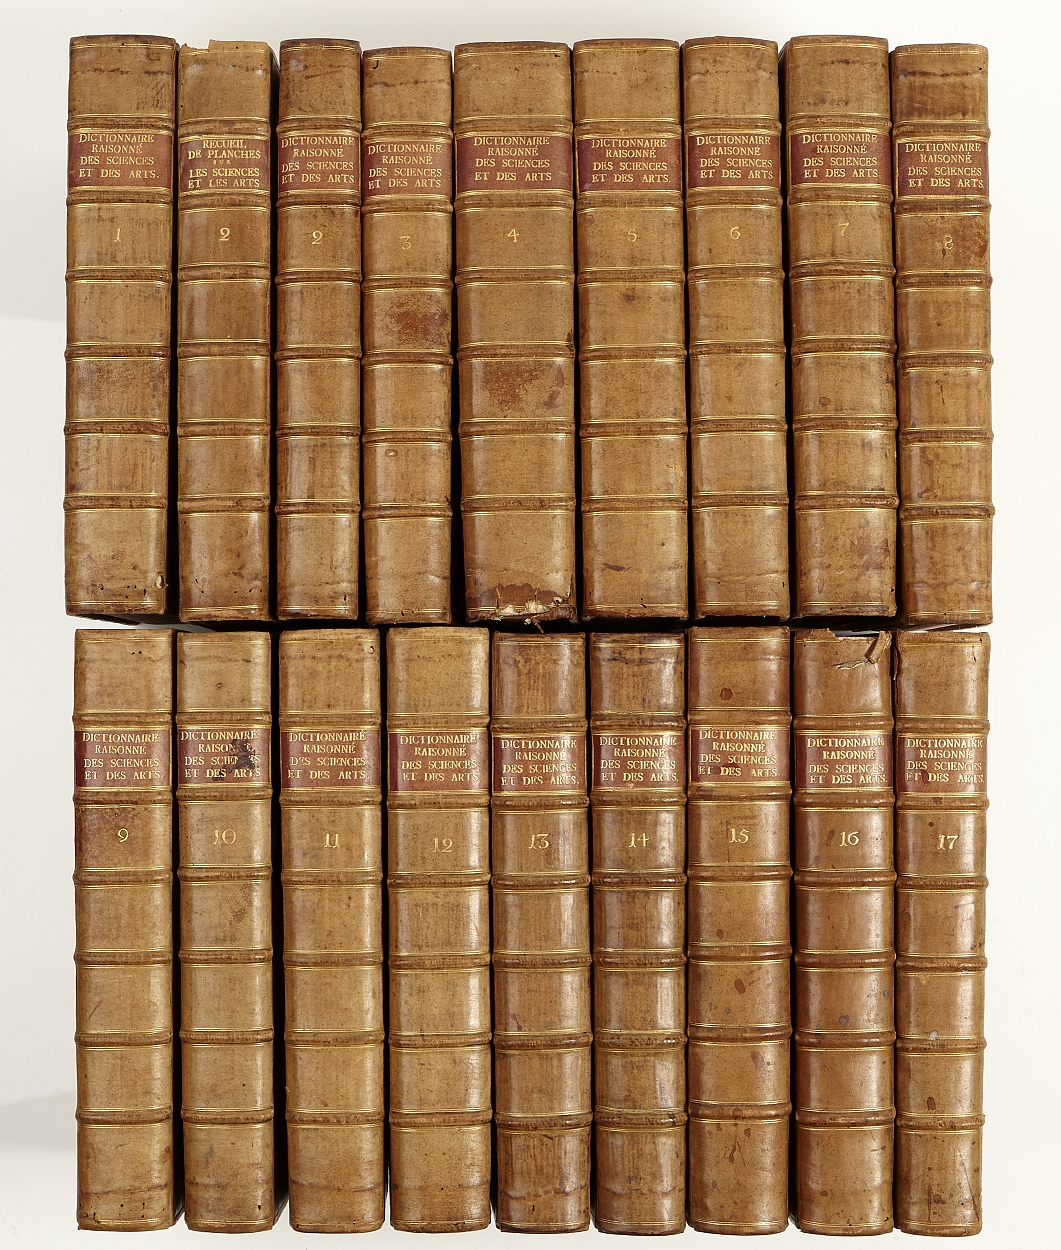 The Great French Encyclopedia, 19 volumes